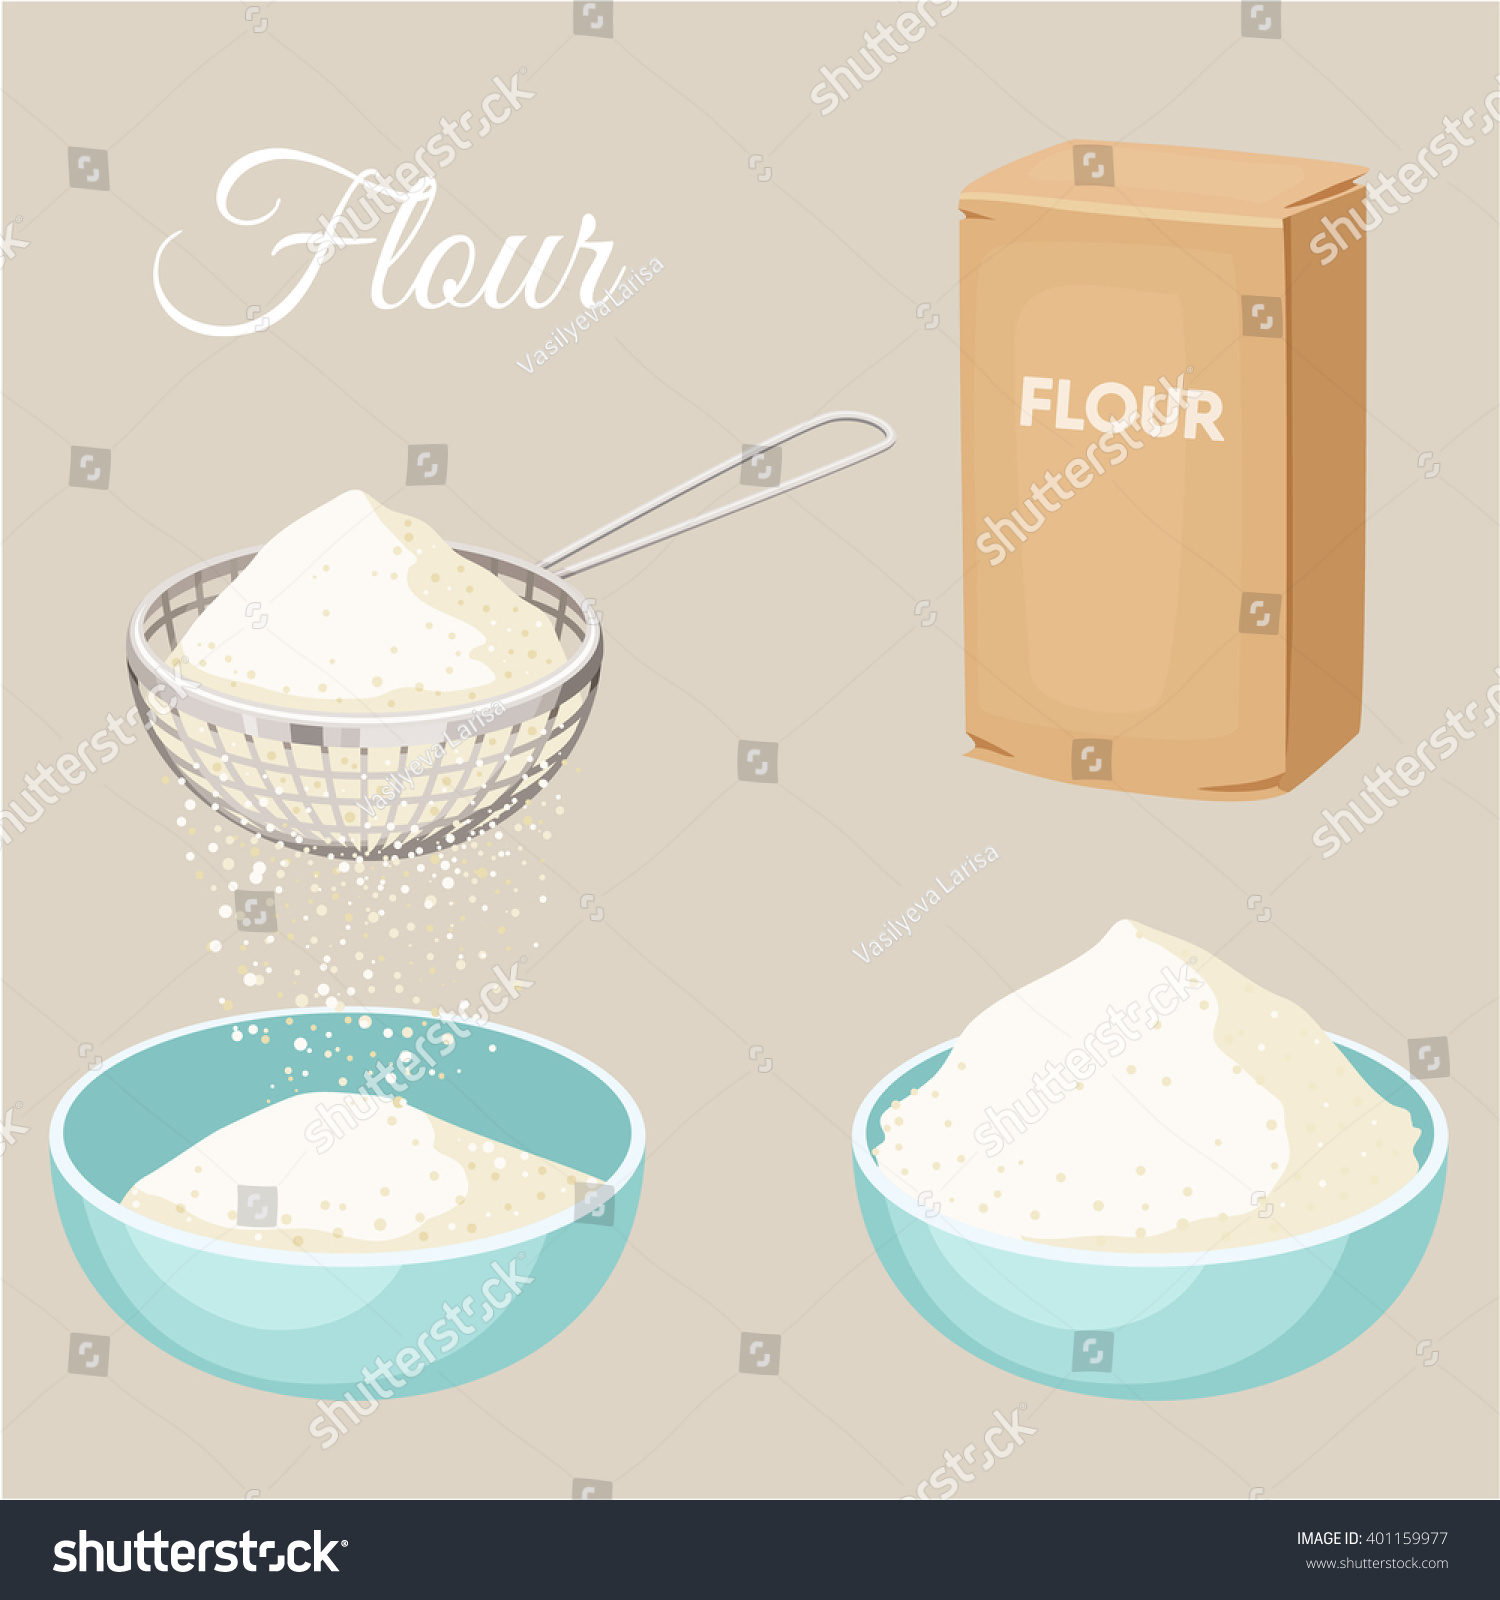 flour sifter package of bowl set stock vector 401159977 - shutterstock